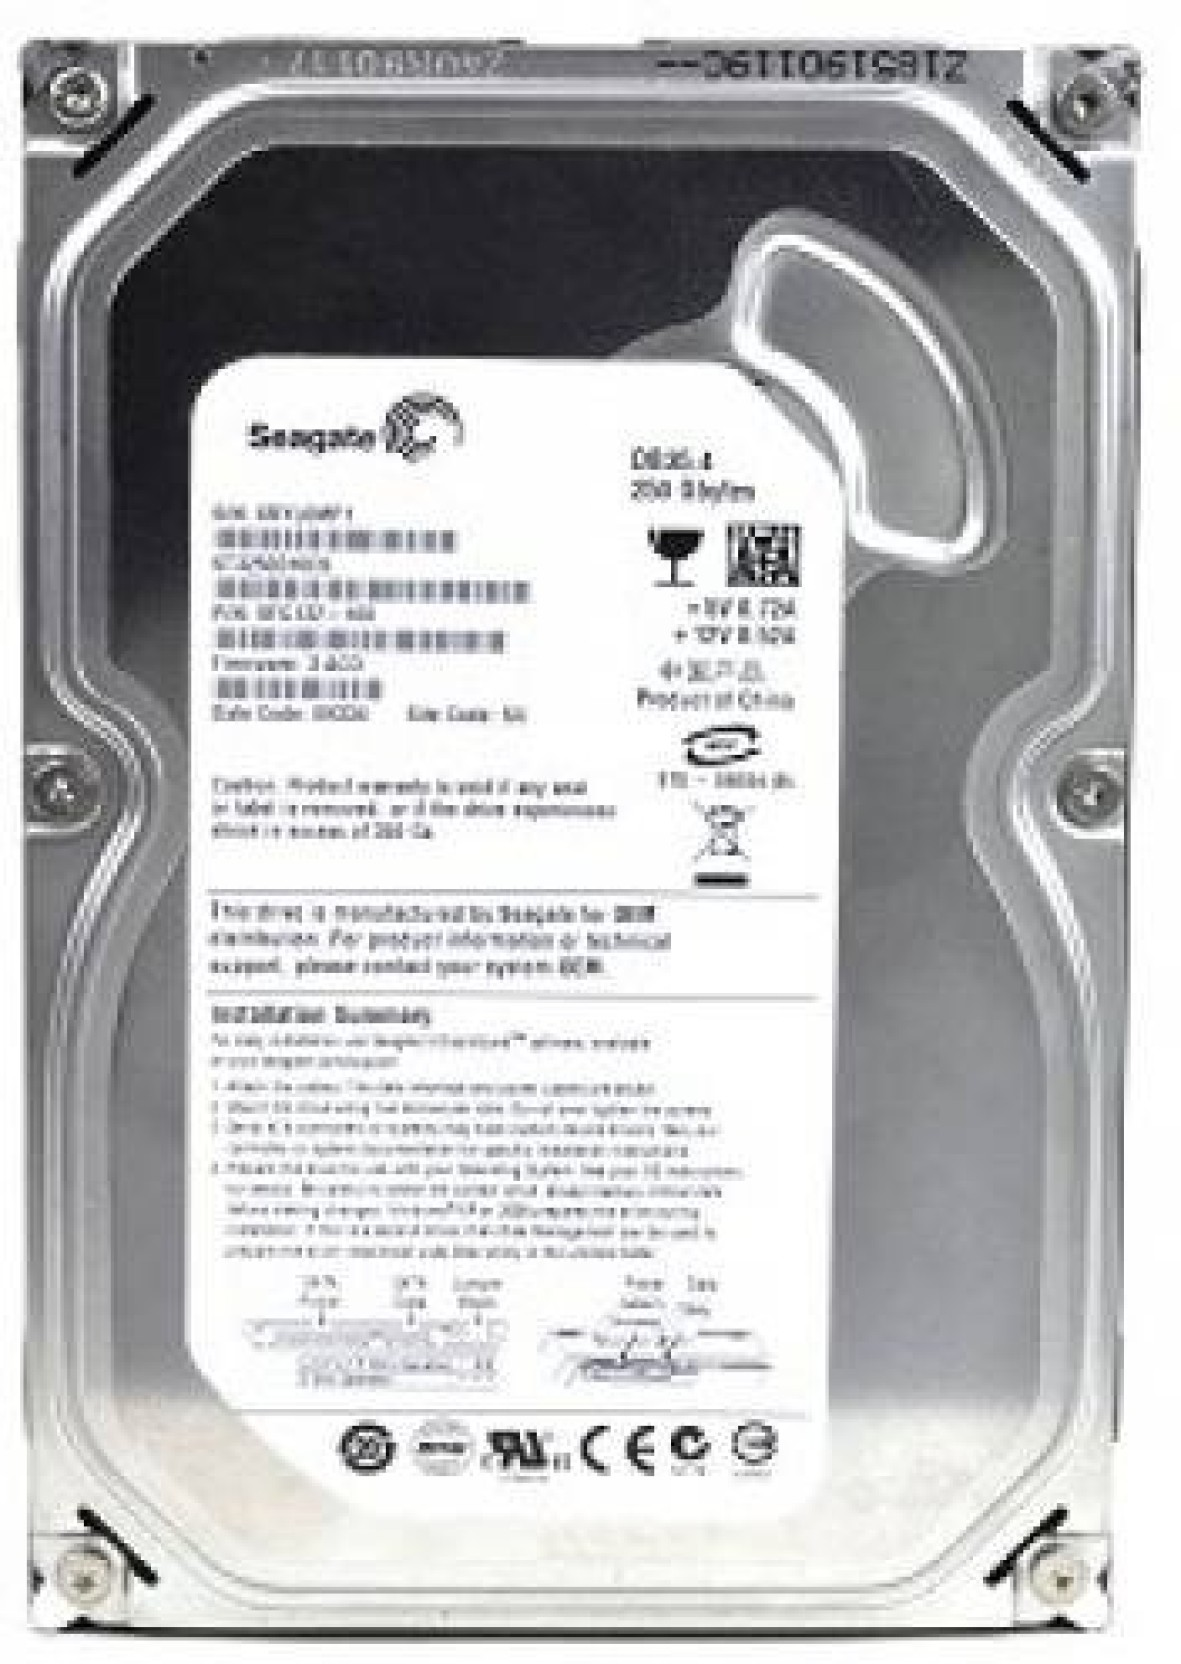 Seagate Db 34 250 Gb Desktop Internal Hard Disk Drive St3250310cs Hardisk Pc Sata Add To Cart